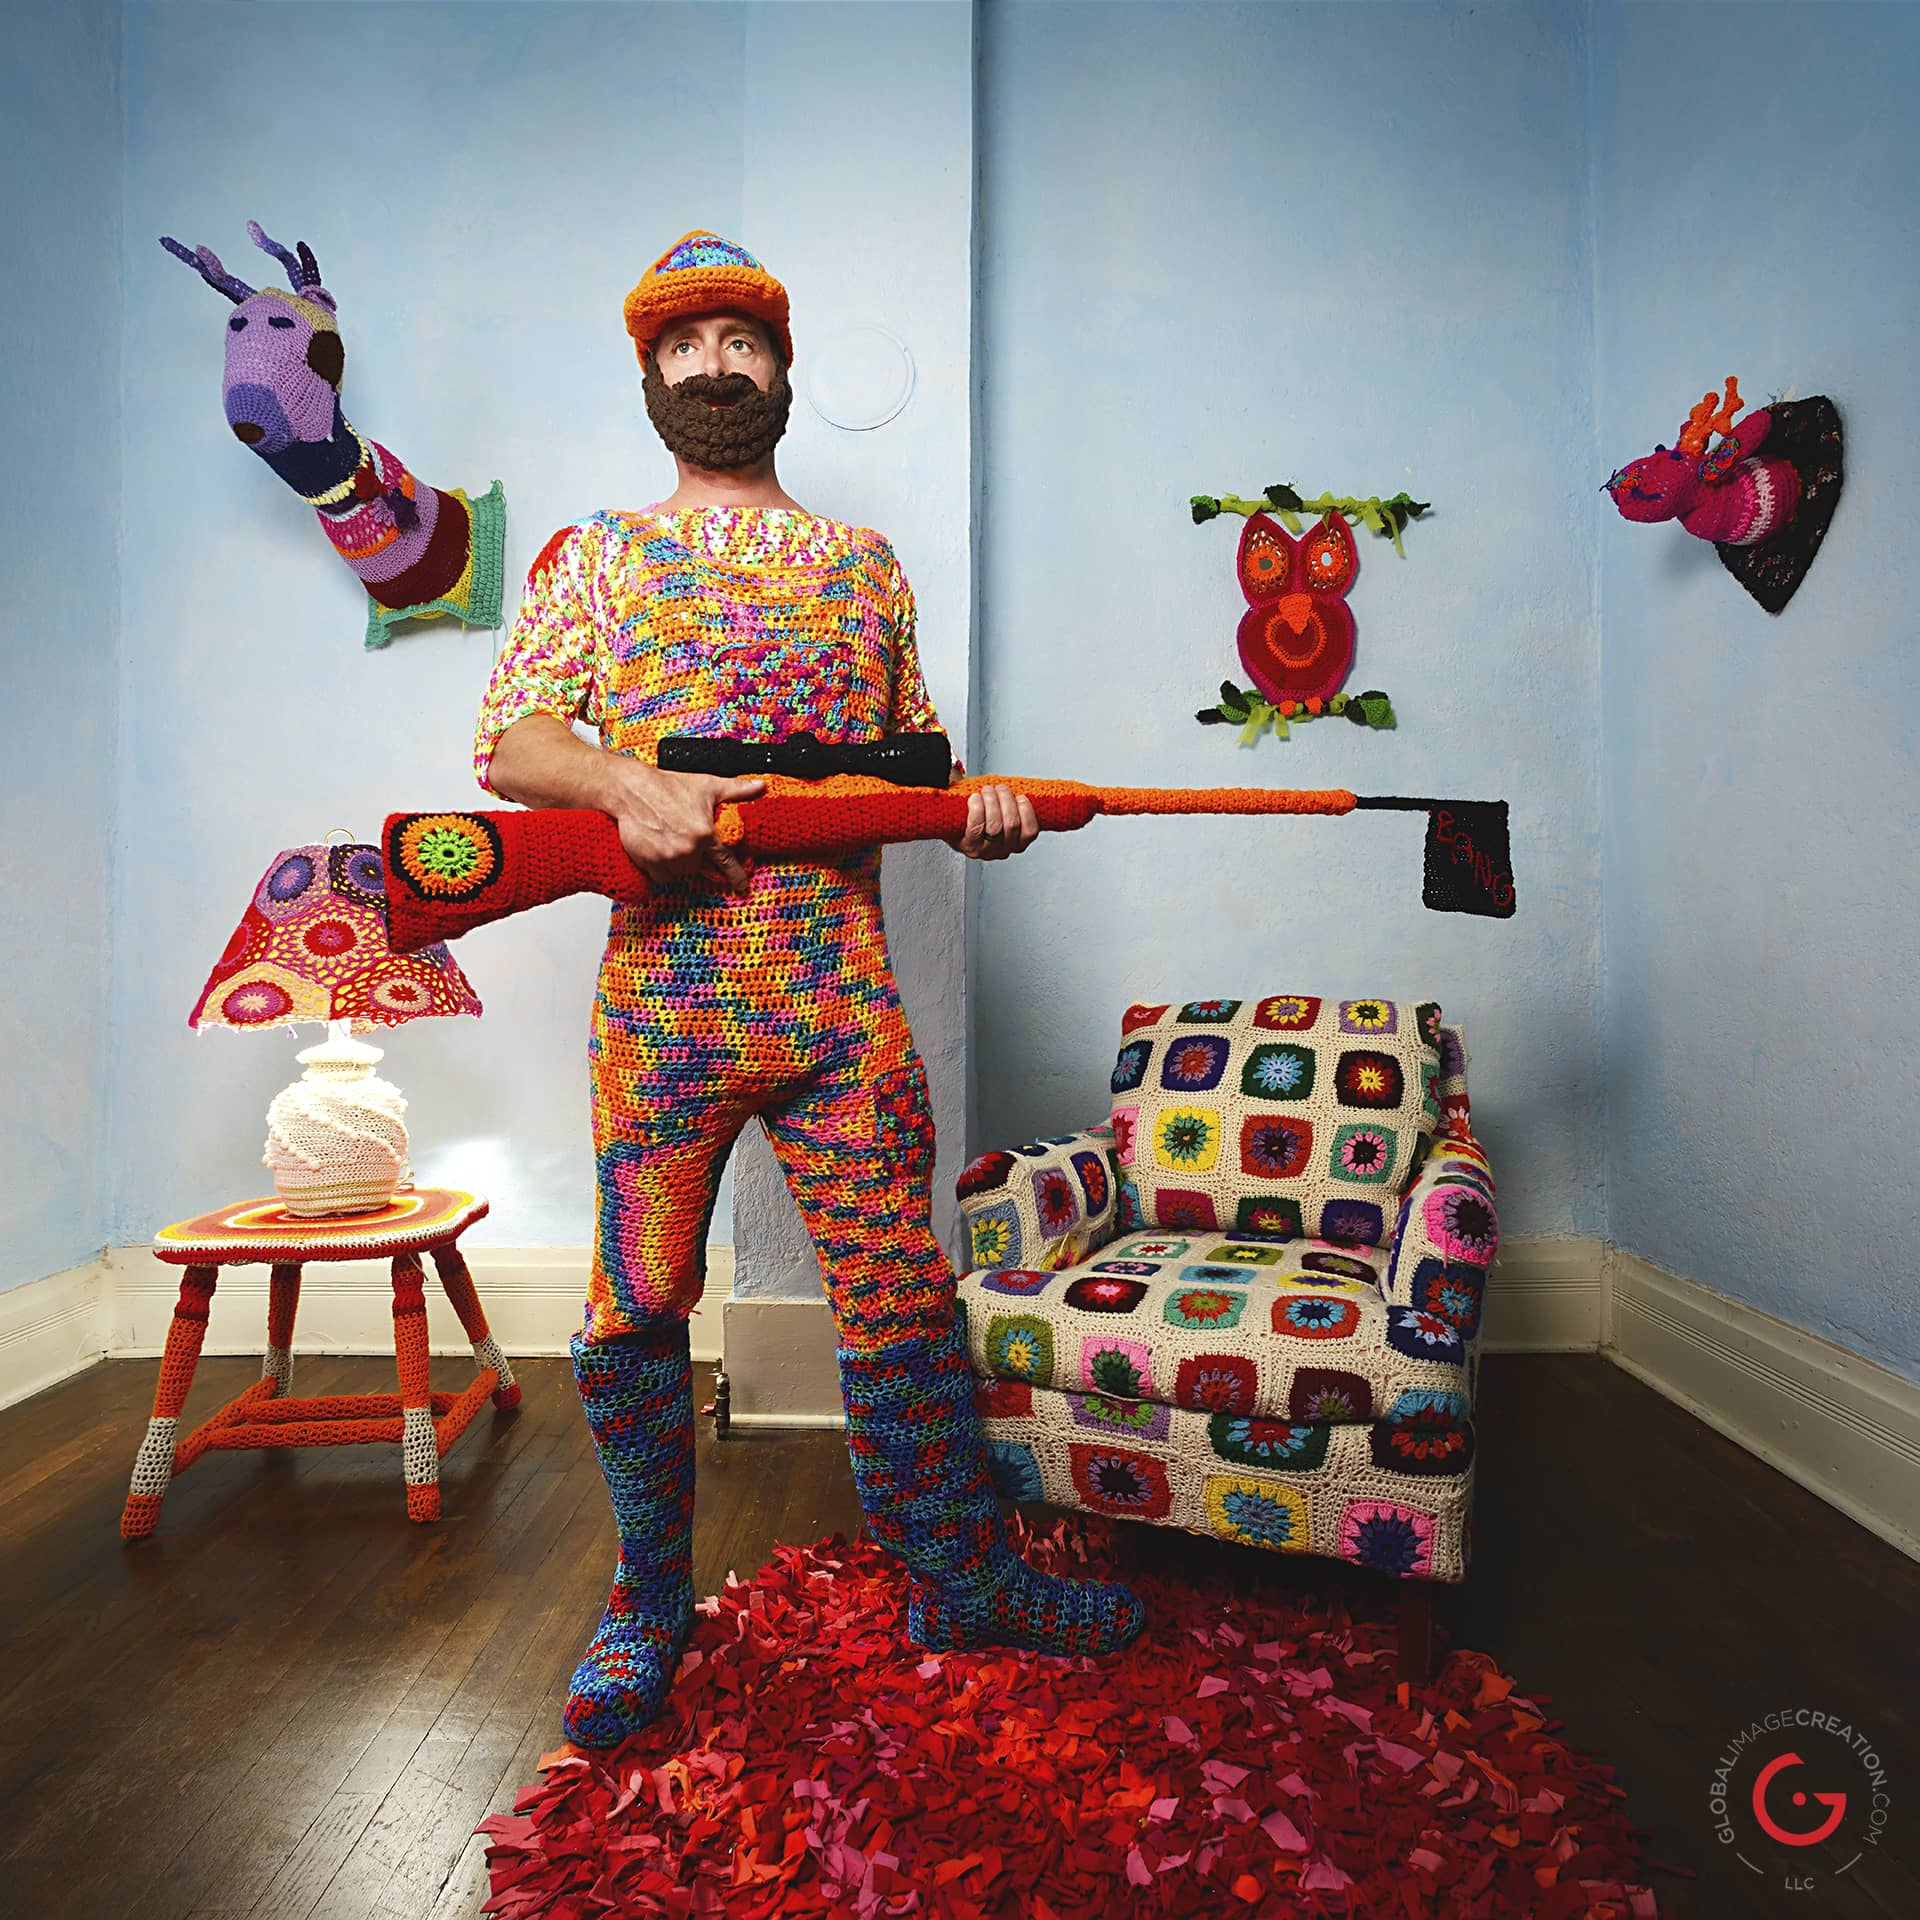 Check Out 'Yarnography' - Photos By Jeremy Mason McGraw, Colorful Crochet Art of Gina Gallina